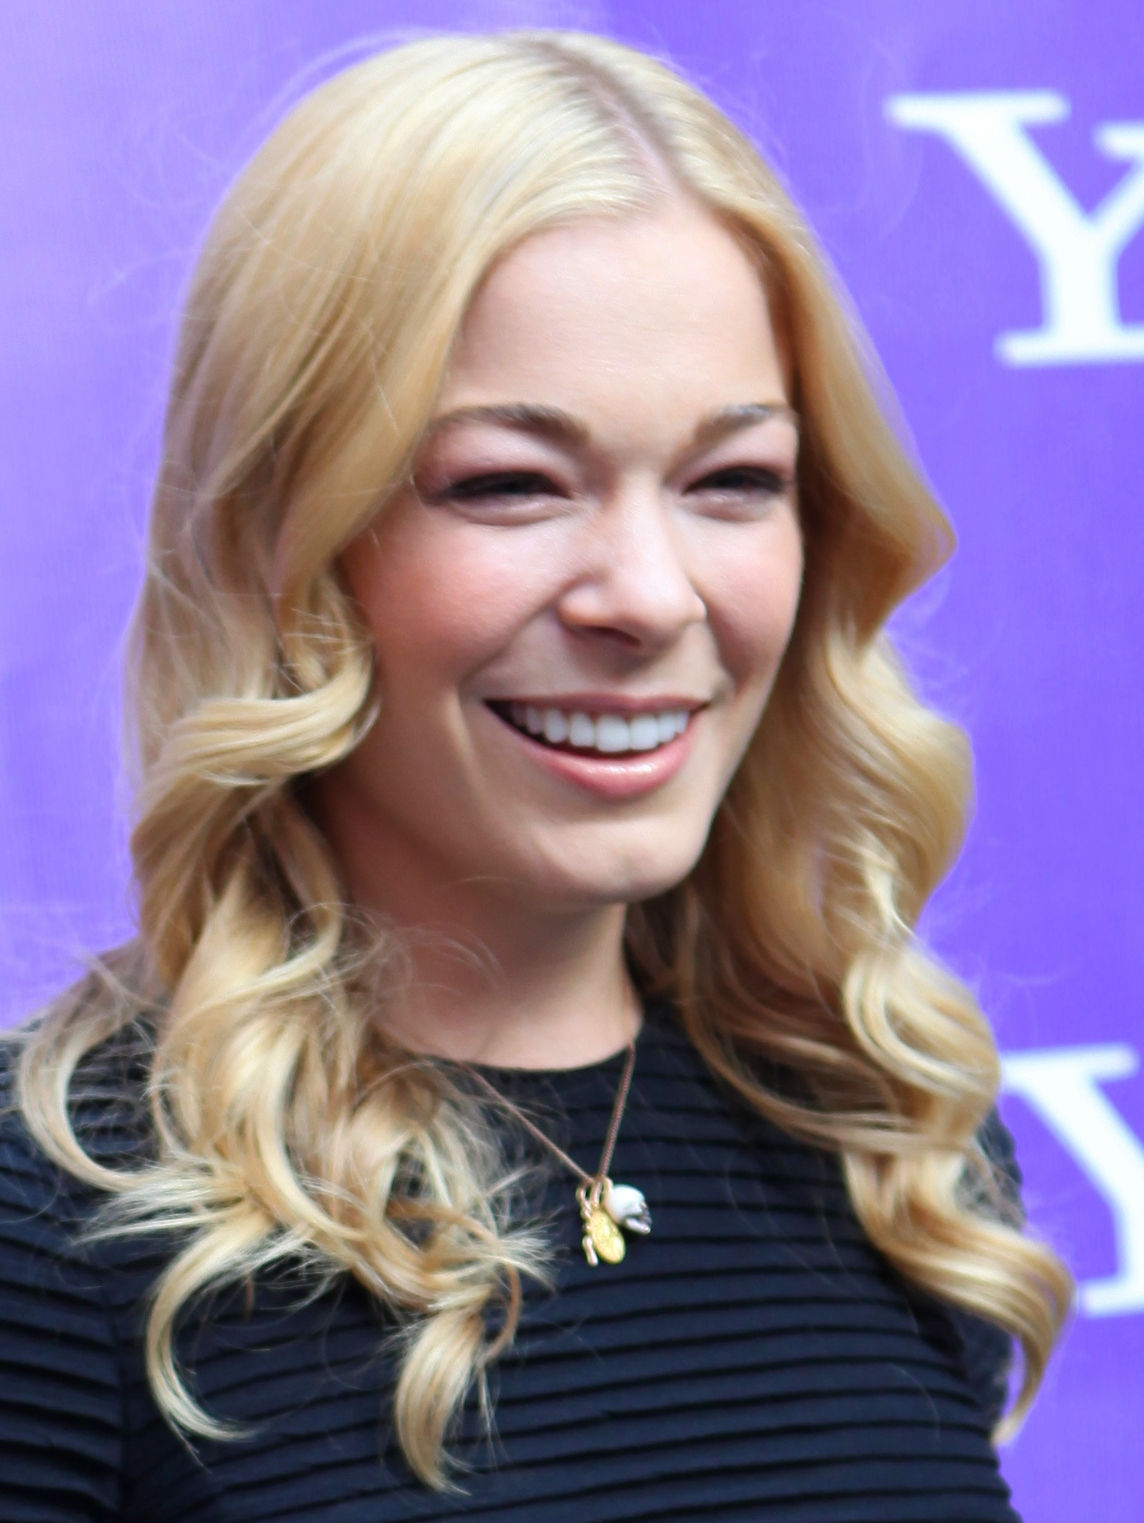 Photo of LeAnn Rimes: American singer, songwriter, actress